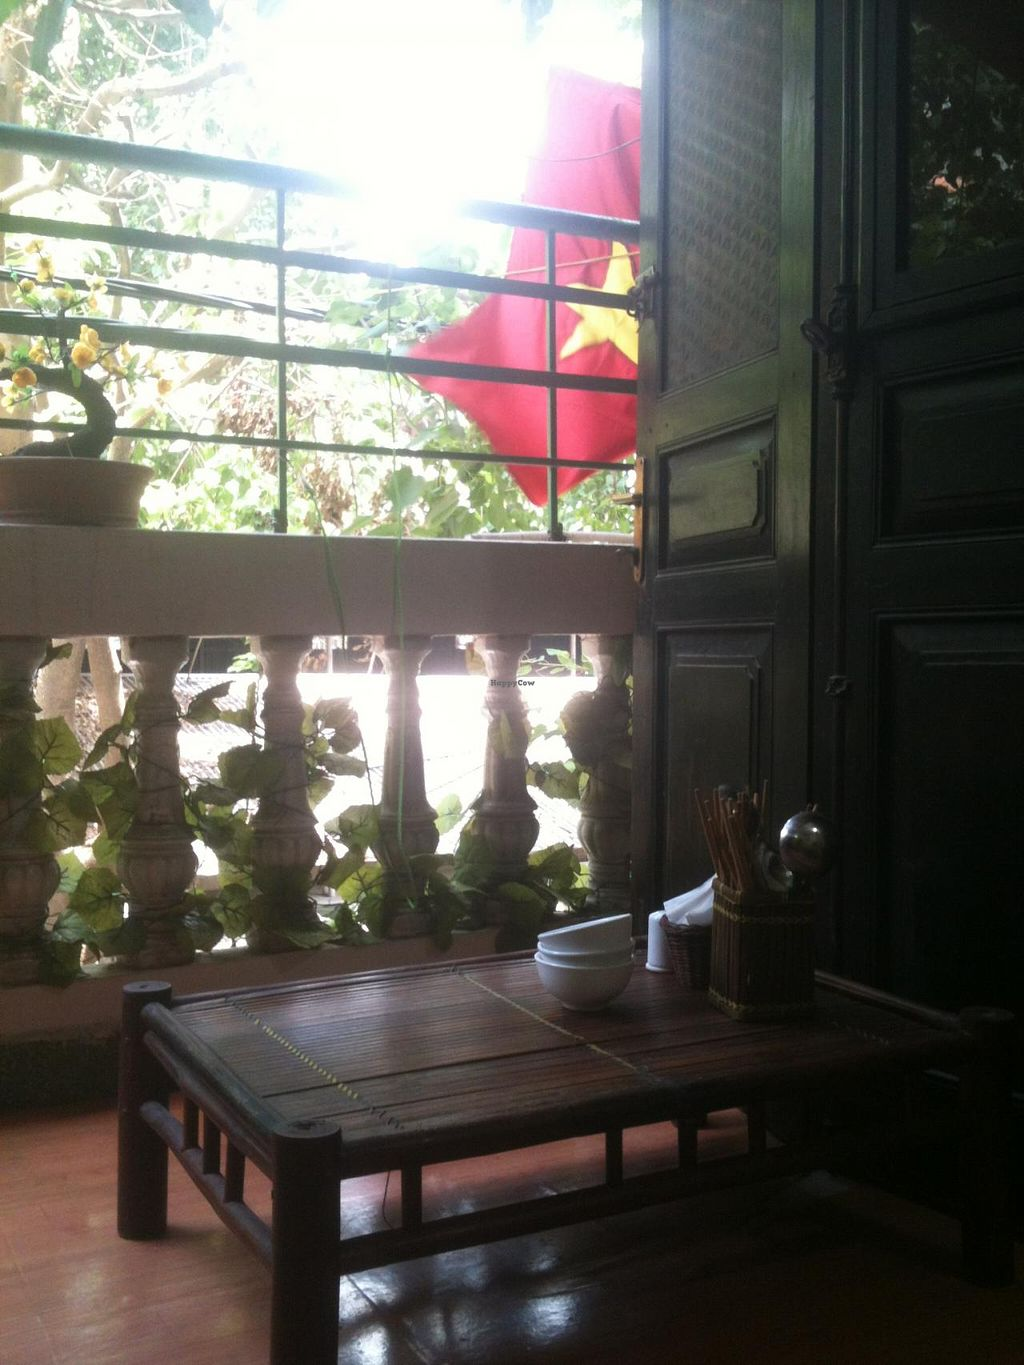 """Photo of An Phuc  by <a href=""""/members/profile/heloisepe"""">heloisepe</a> <br/>Second floor has a nice balcony, green, and still quiet because the restaurant is located in an alley <br/> July 5, 2015  - <a href='/contact/abuse/image/32126/108223'>Report</a>"""